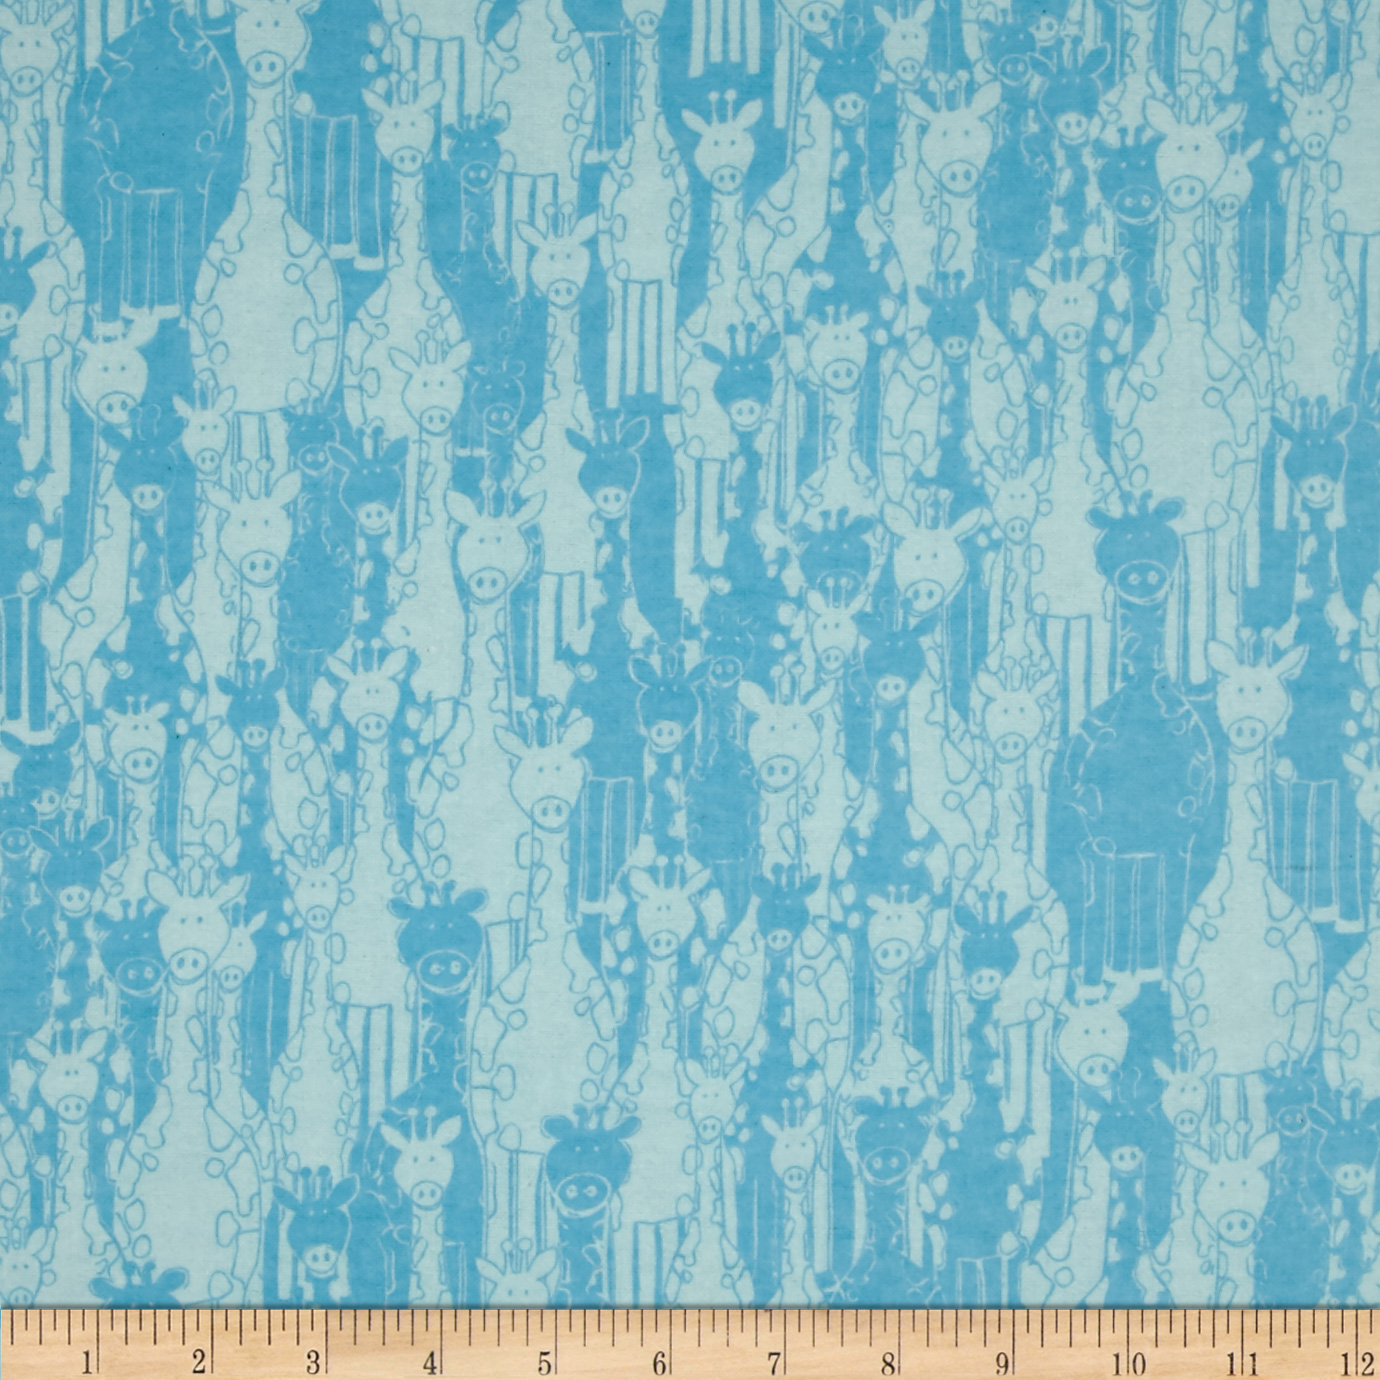 Flannel Giraffe Turquoise Fabric by Fabri-Quilt in USA